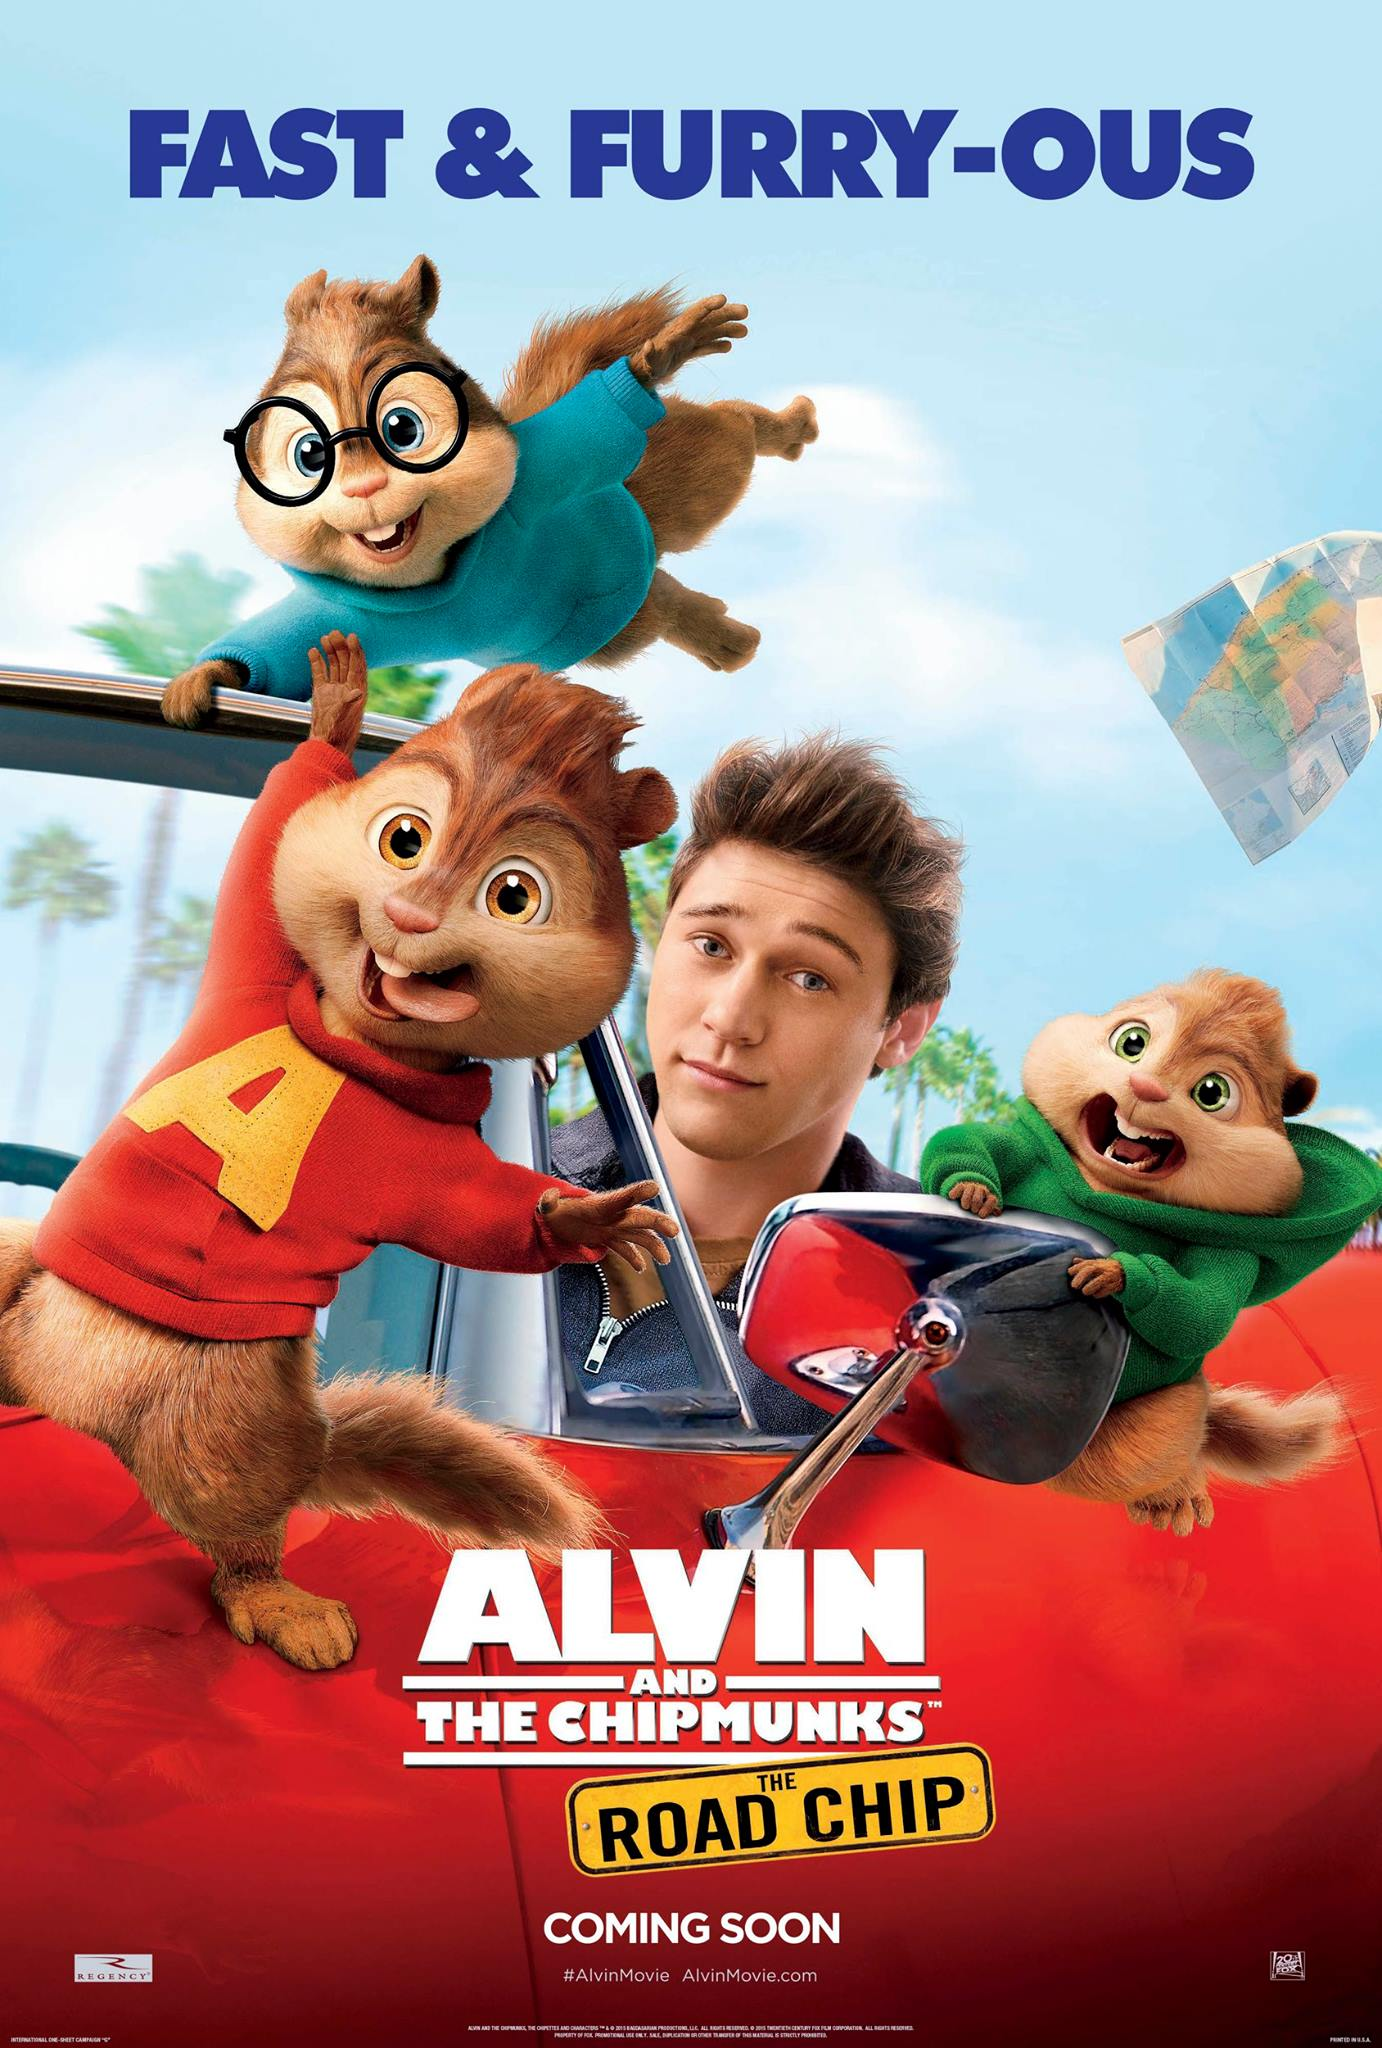 Alvin and the Chipmunks The Road Chip-12Novembro2015 (2)